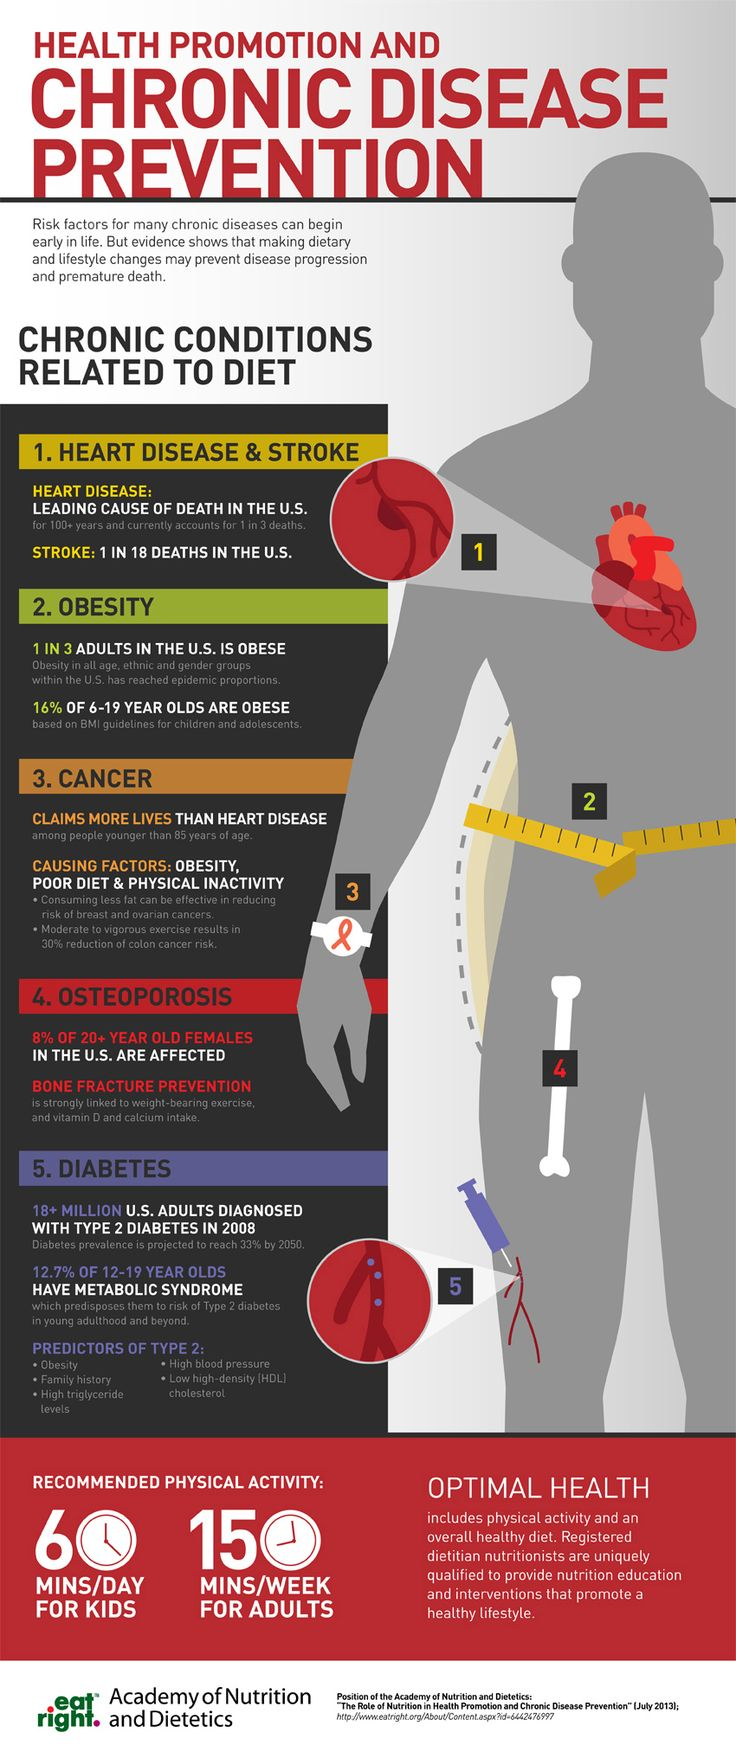 Chronic Disease Prevention [Infographic] from the Academy of Nutrition and Dietetics